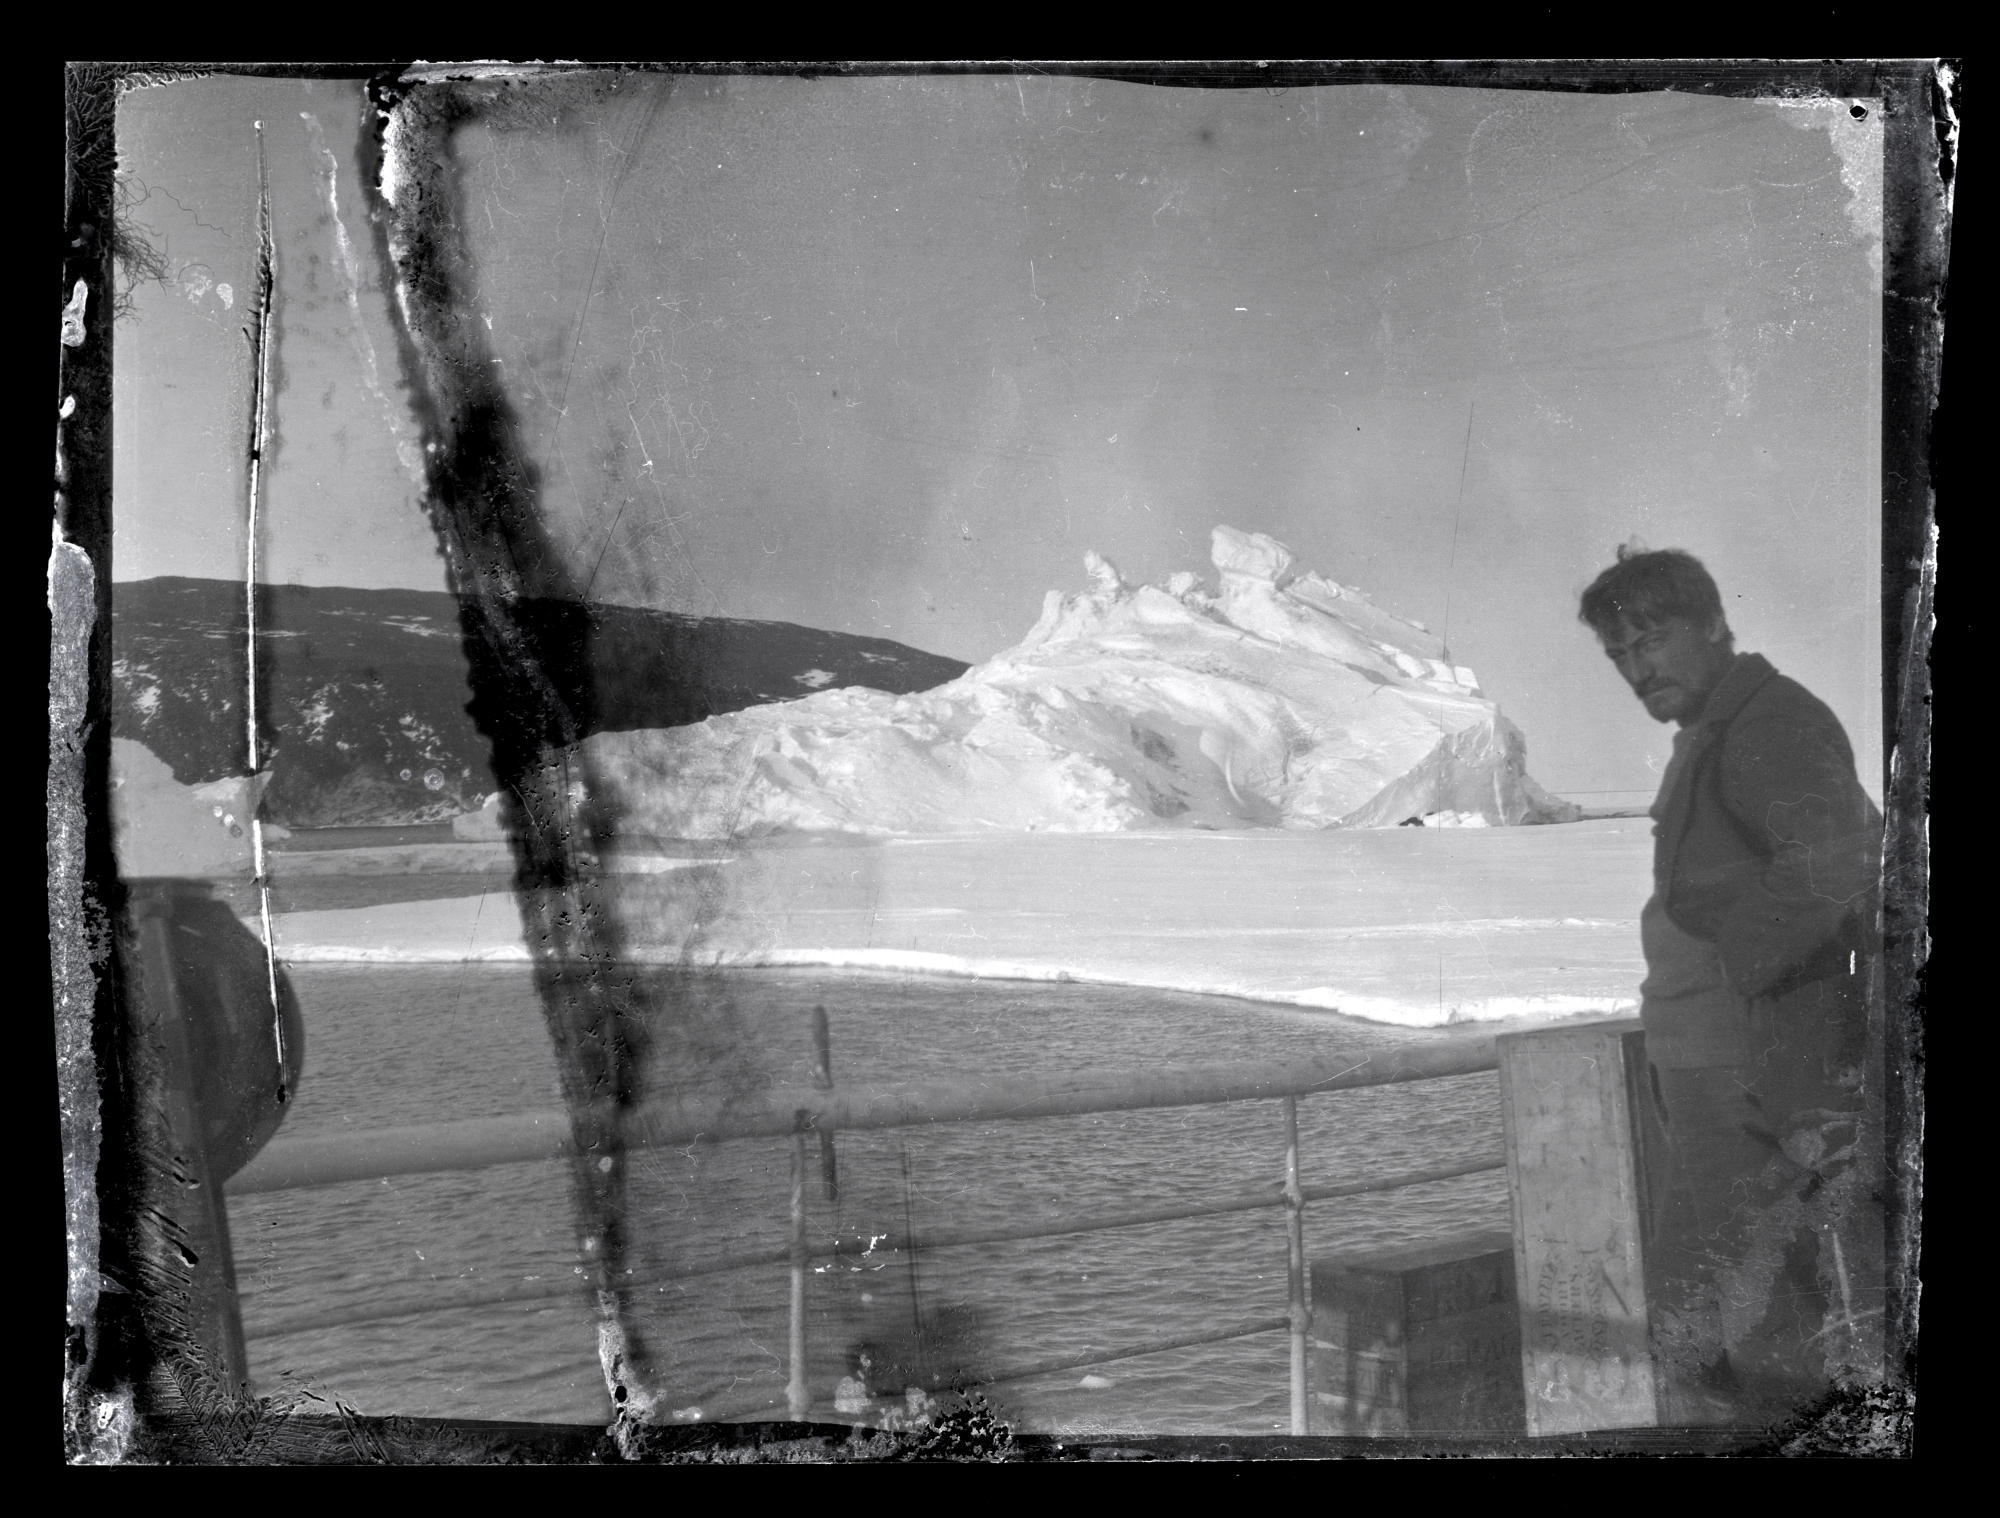 Make: Lanovia Model: C-550 Digitised by NZMS for the Antarctic Heritage Trust from original negatives. Copyright Antarctic Heritage Trust